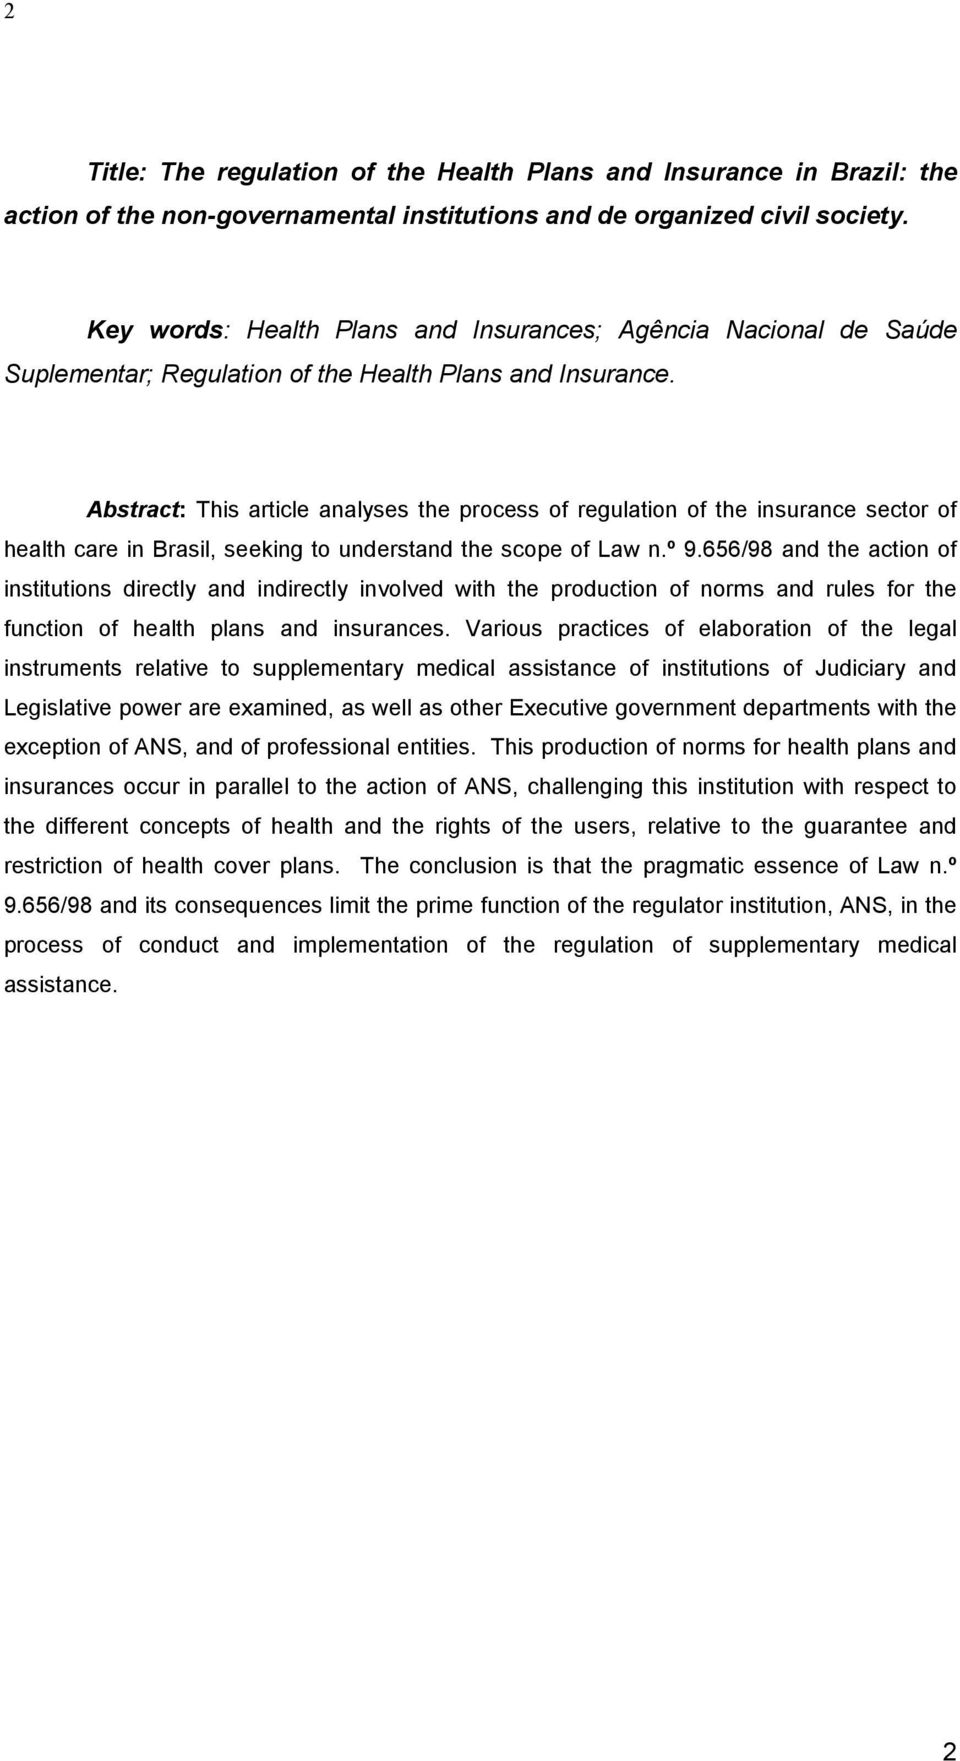 Abstract: This article analyses the process of regulation of the insurance sector of health care in Brasil, seeking to understand the scope of Law n.º 9.